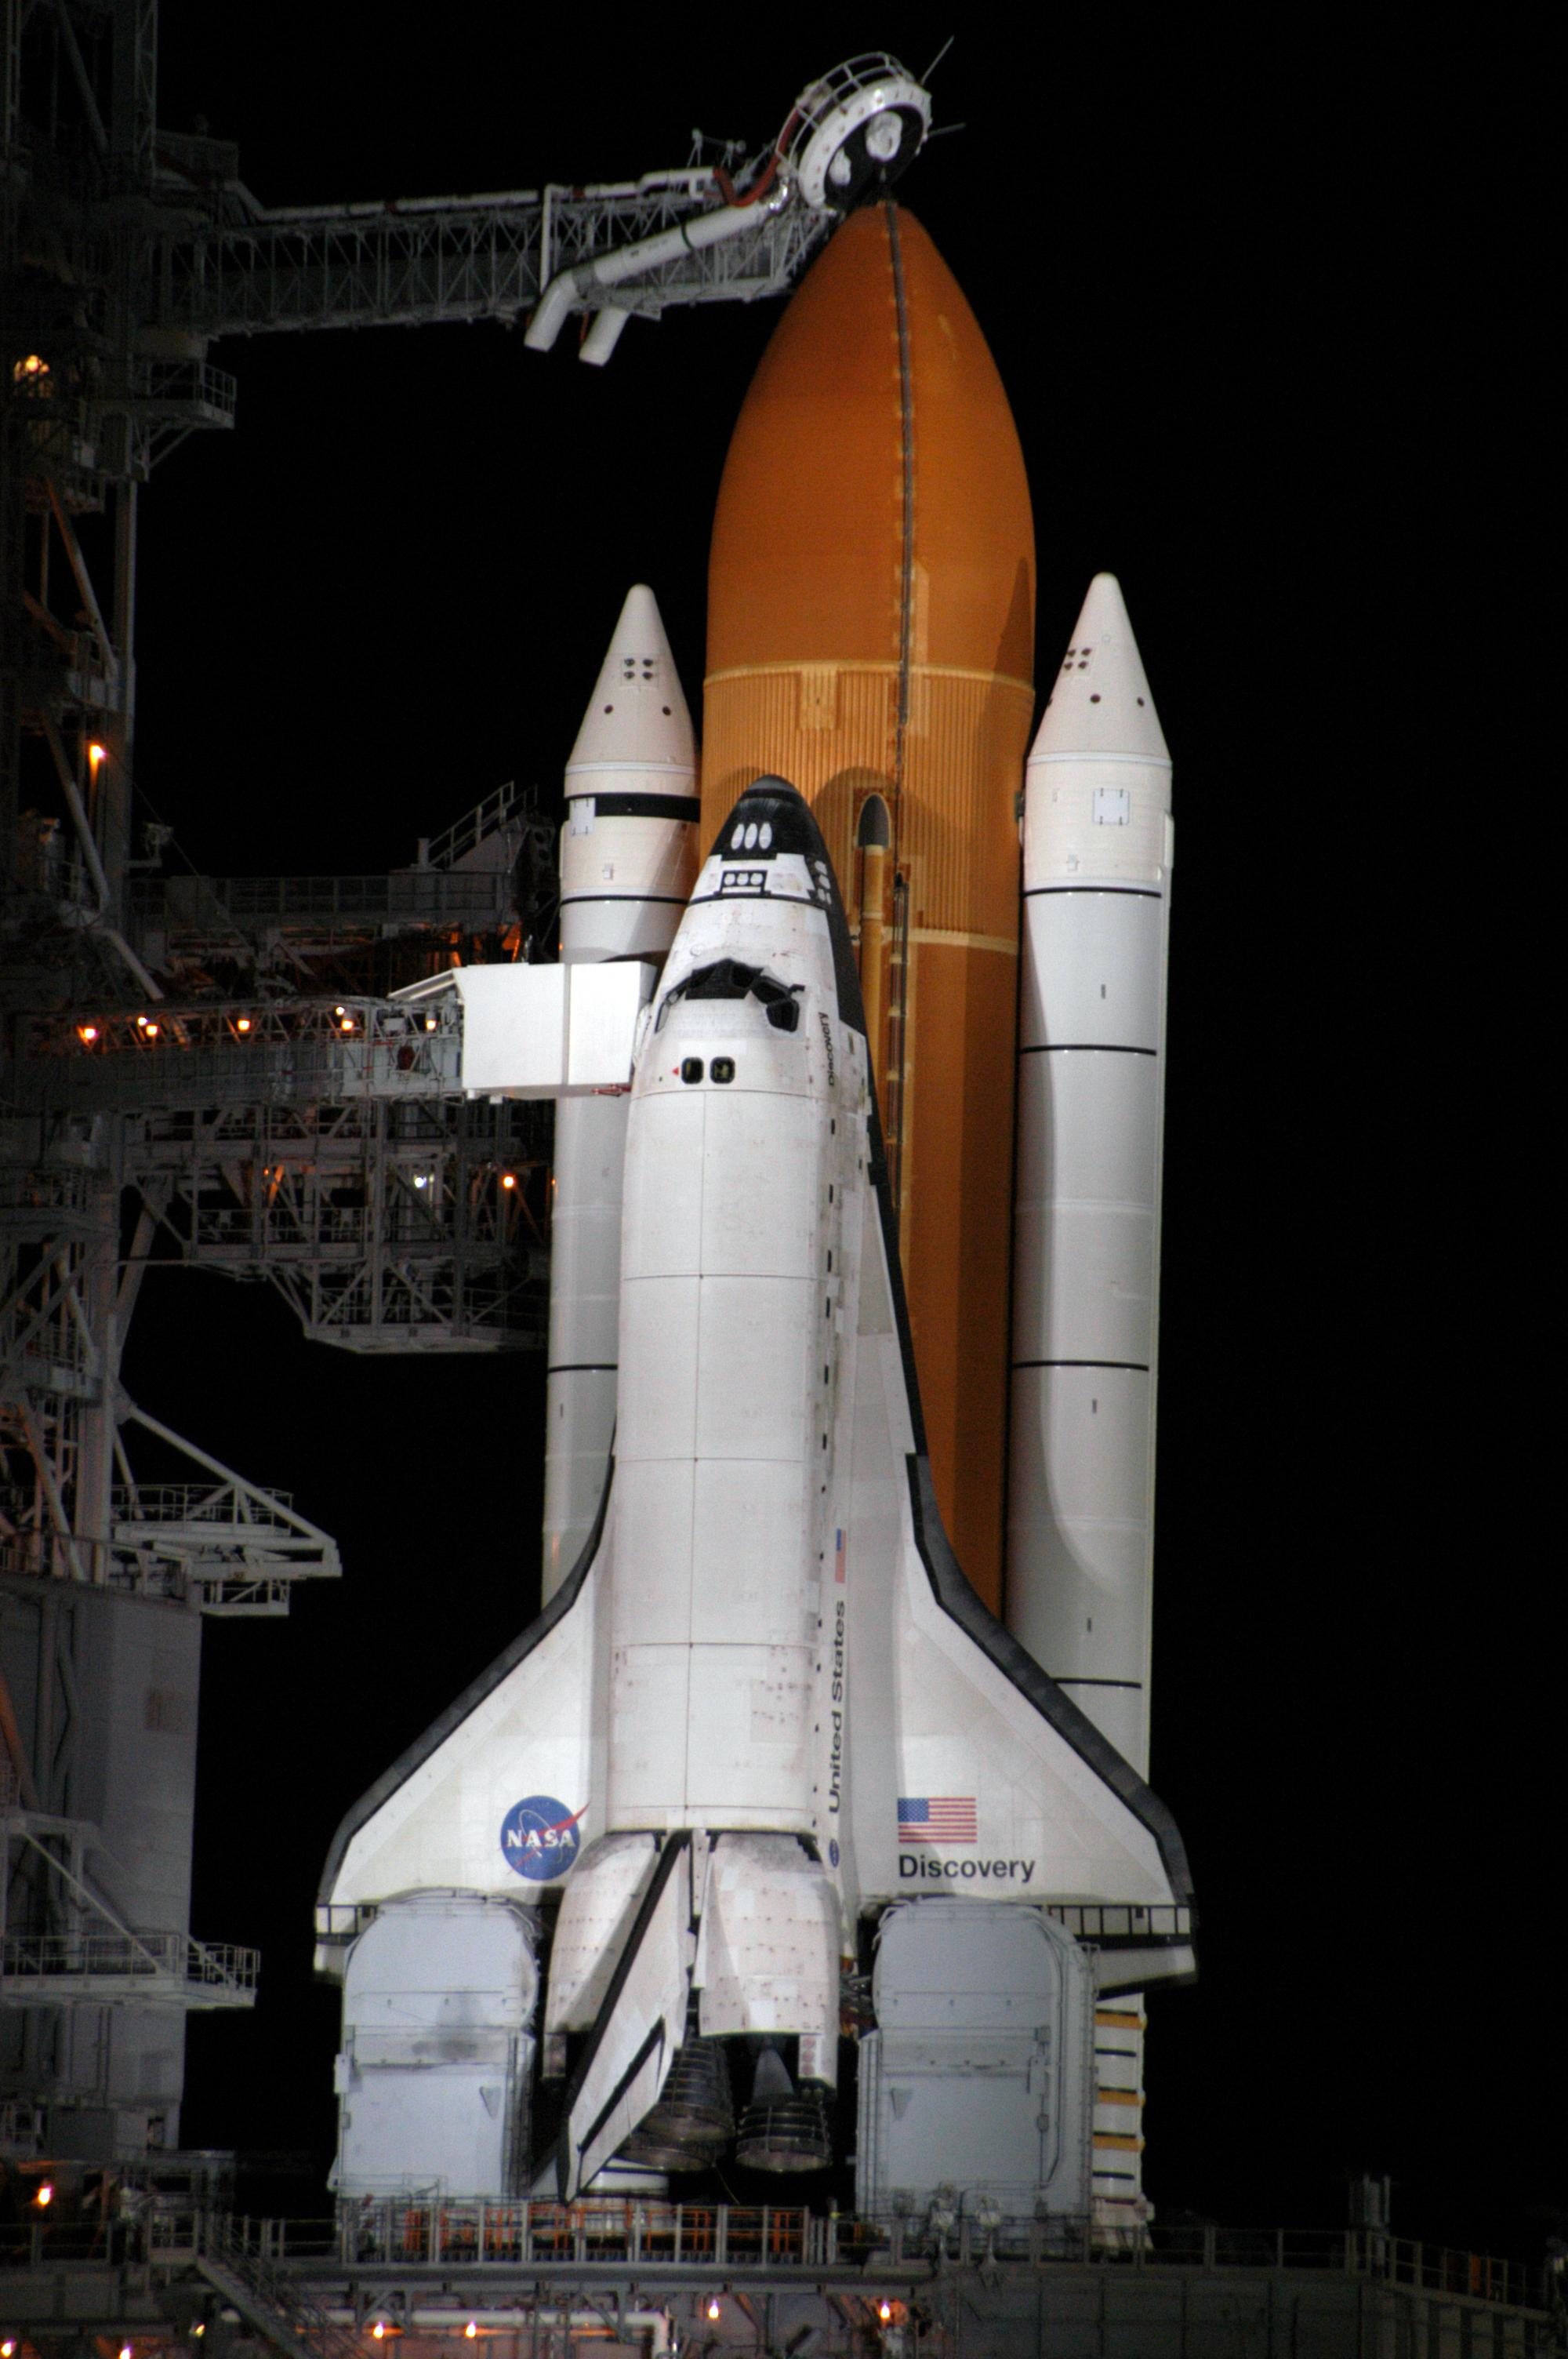 space shuttle umbilical connections - photo #17